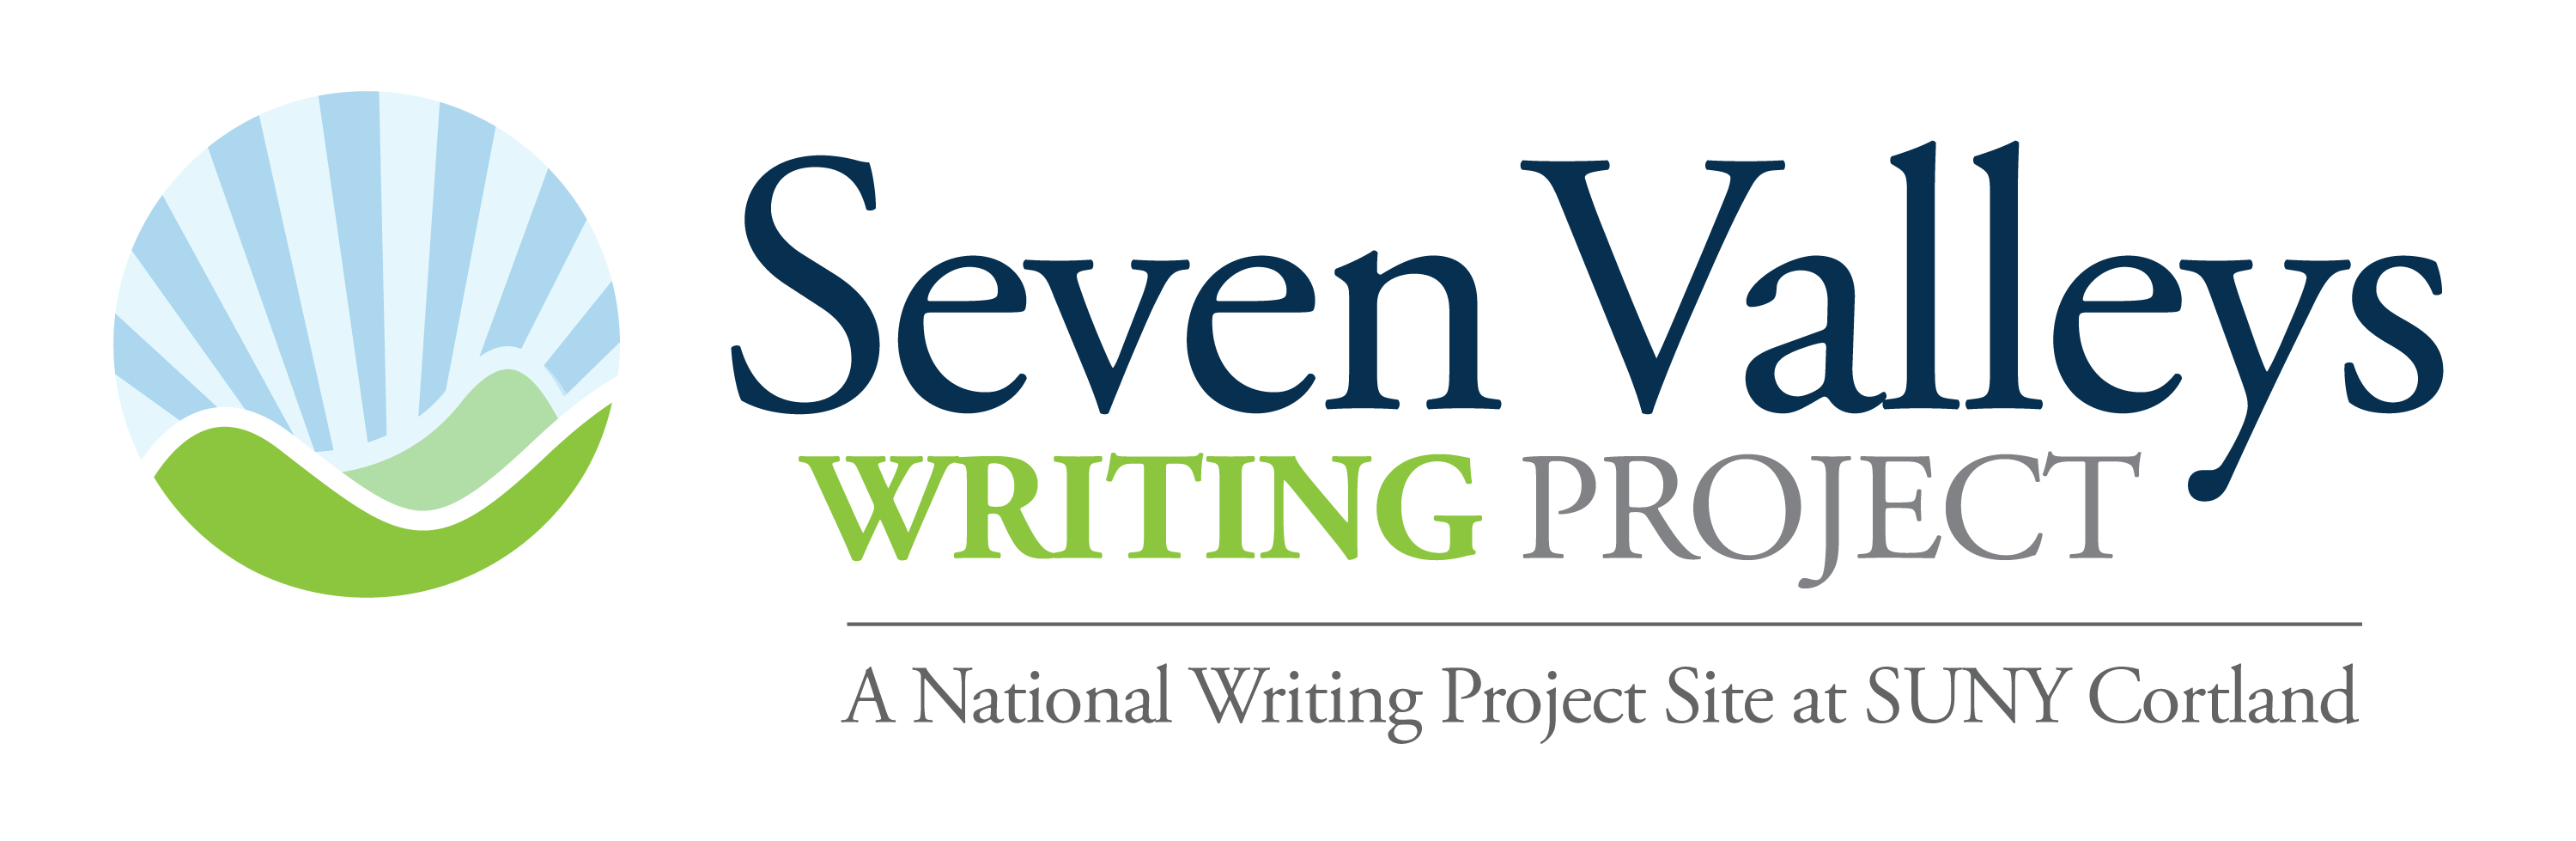 Seven Valleys Writing Project @ SUNY Cortland